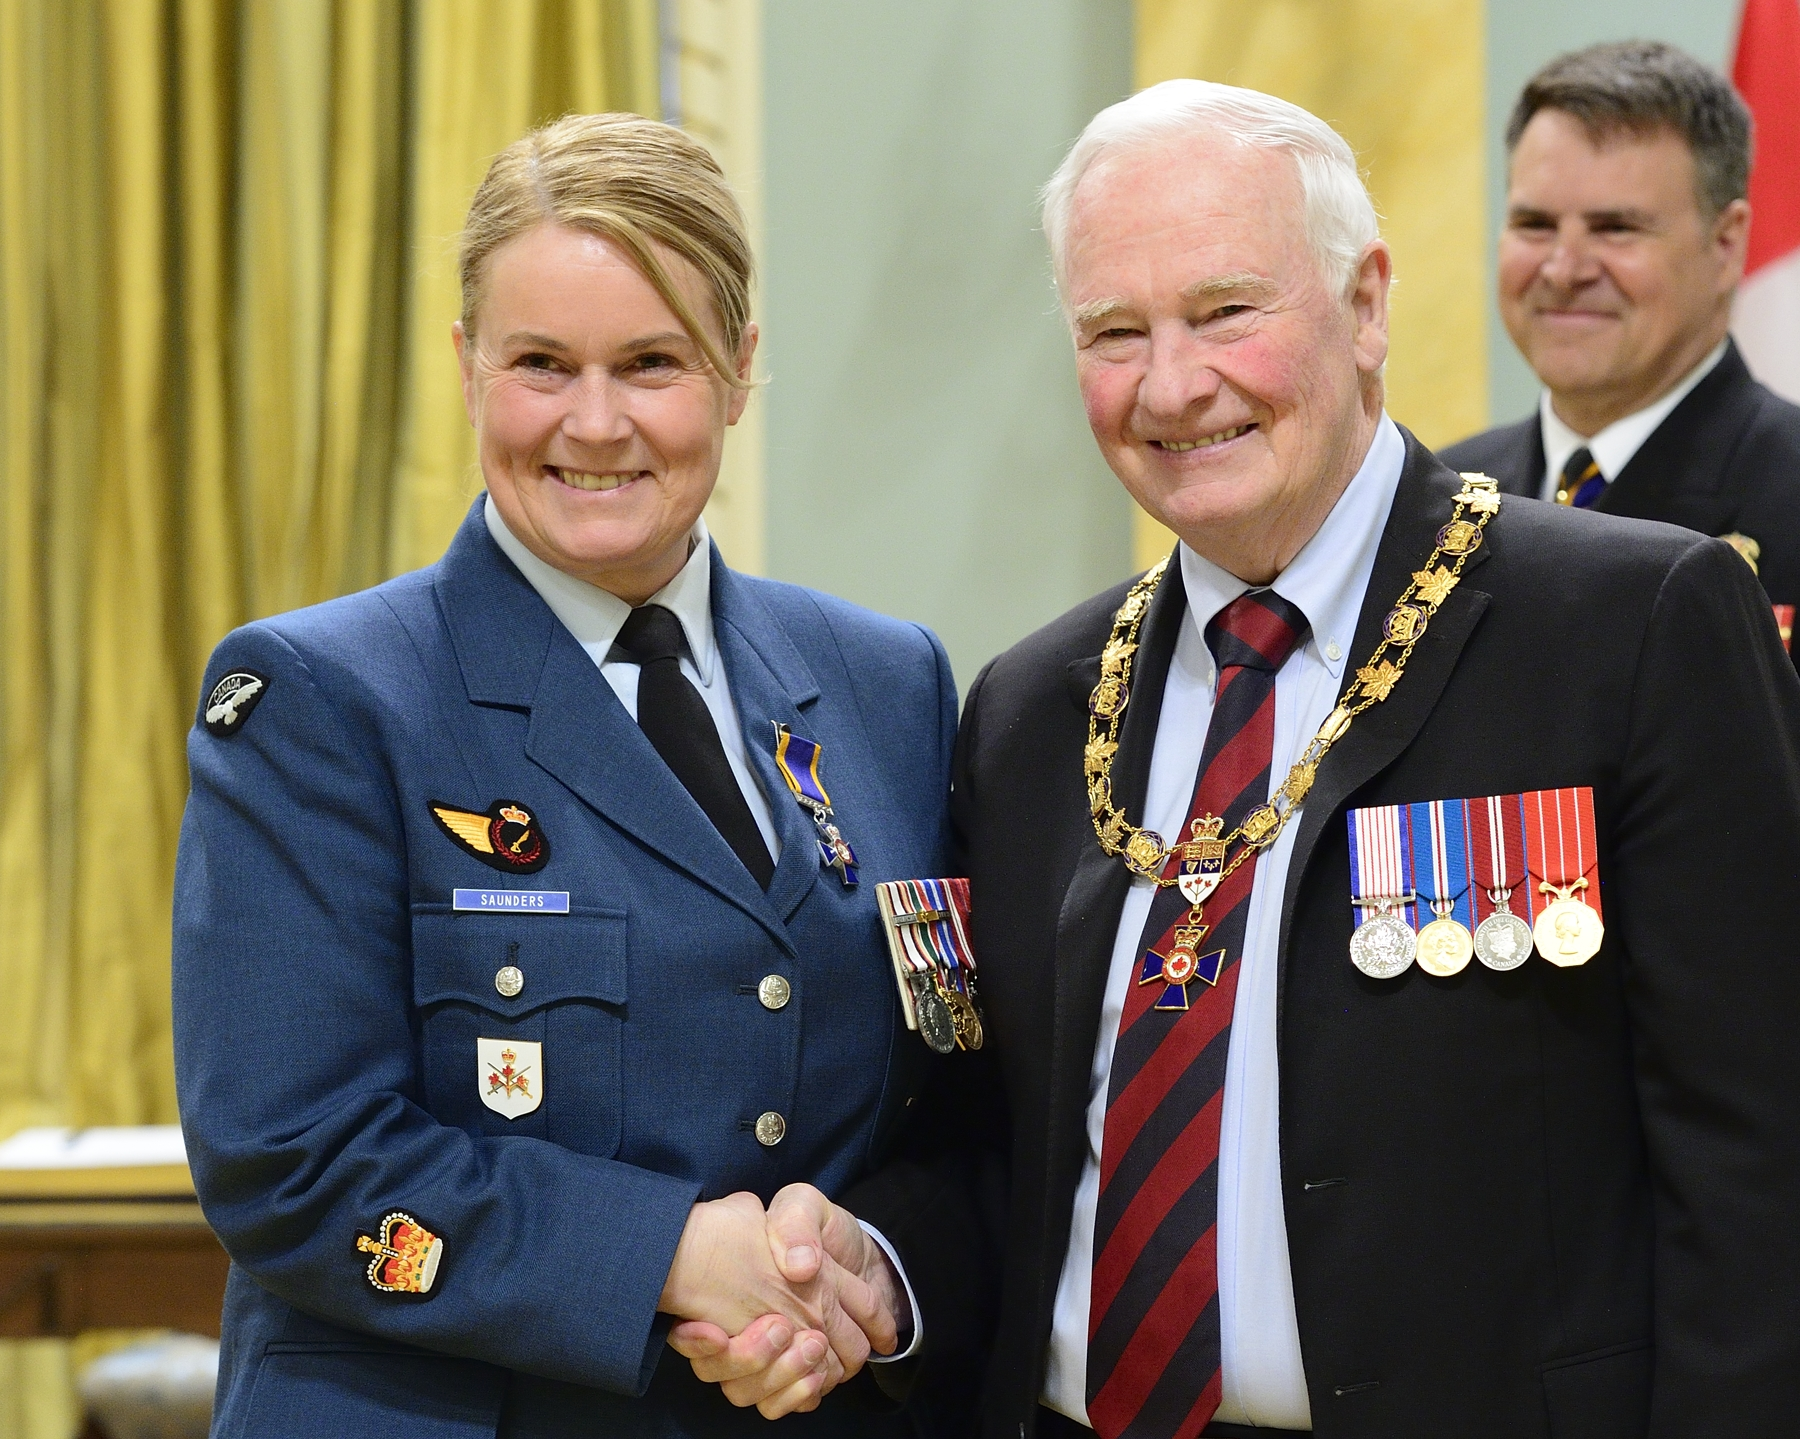 Governor General and Commander-in-Chief of Canada David Johnston presents the Order of Military Merit to Warrant Officer Karen Saunders, MMM, CD, from Canadian Forces Base Kingston, Kingston, Ontario. PHOTO: Sergeant Johanie Mahieu, Rideau Hall ©, GG05-2017-0075-061-saunders